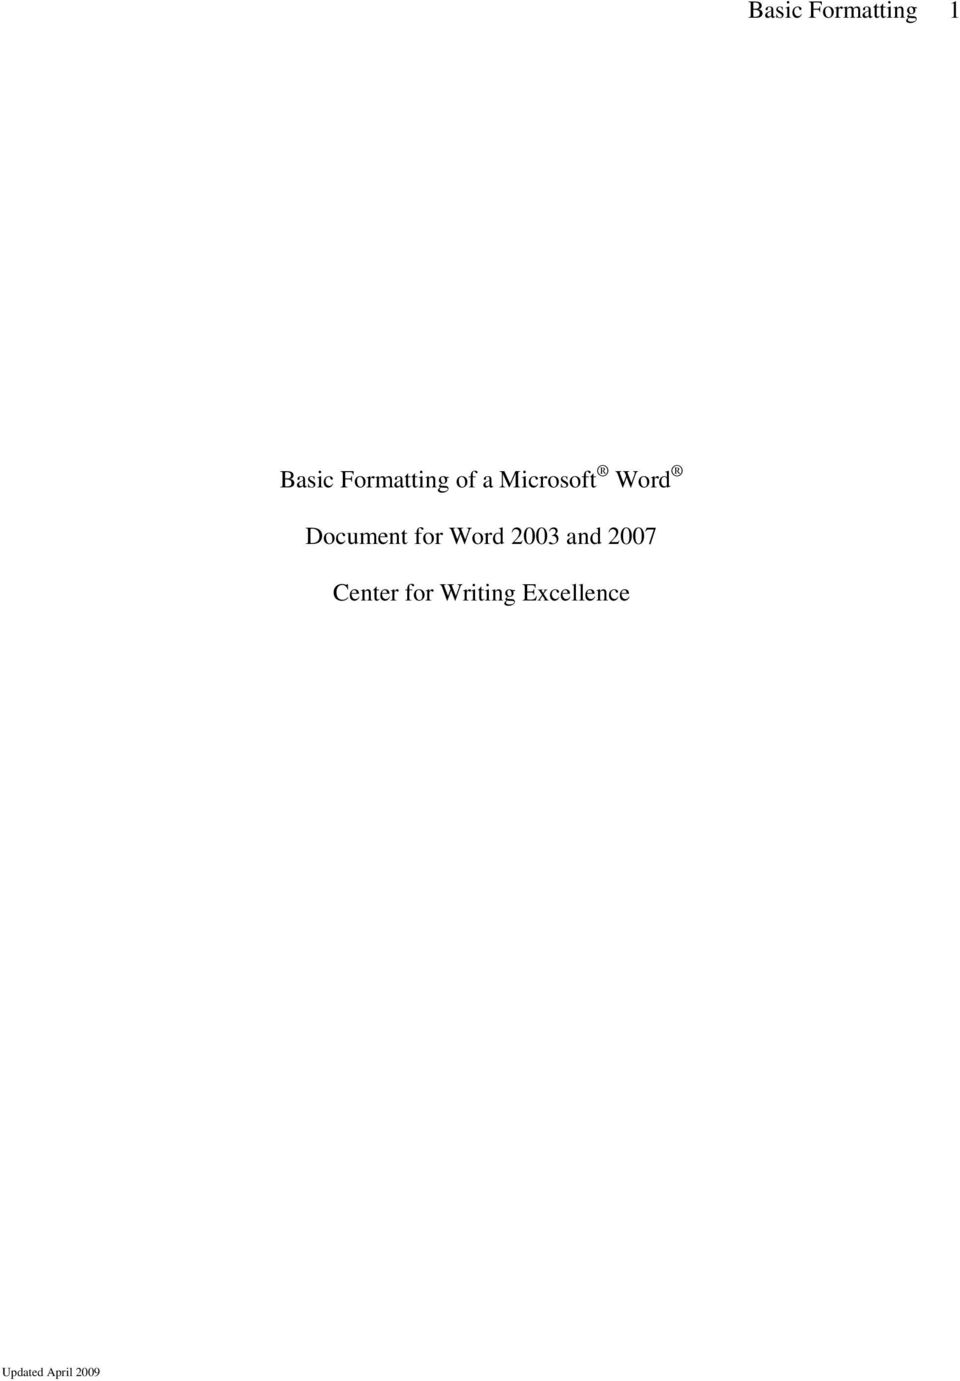 Document for Word 2003 and 2007